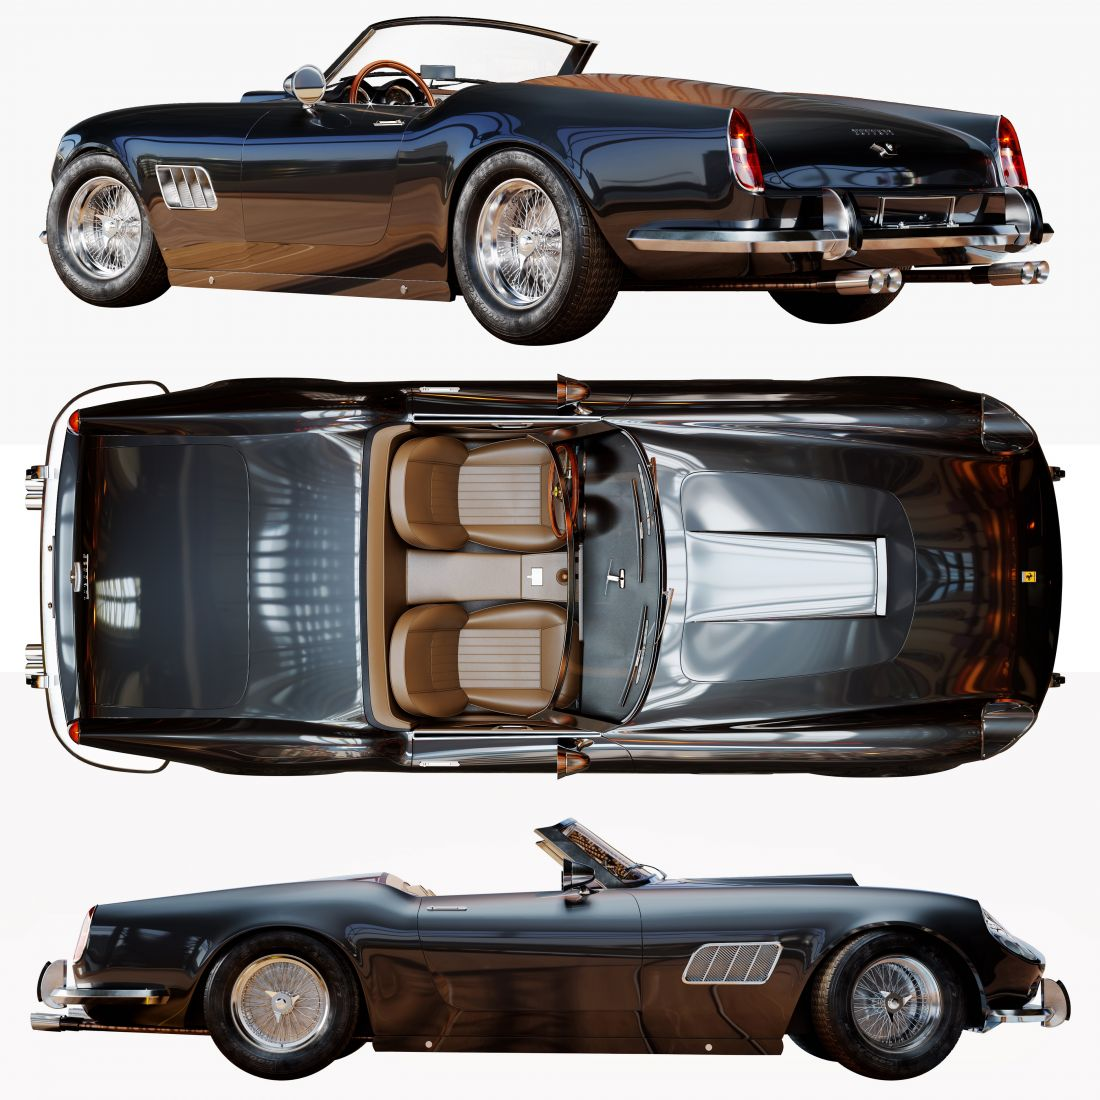 Ferrari 250 Gt Swb California Spyder 3d Model For Corona